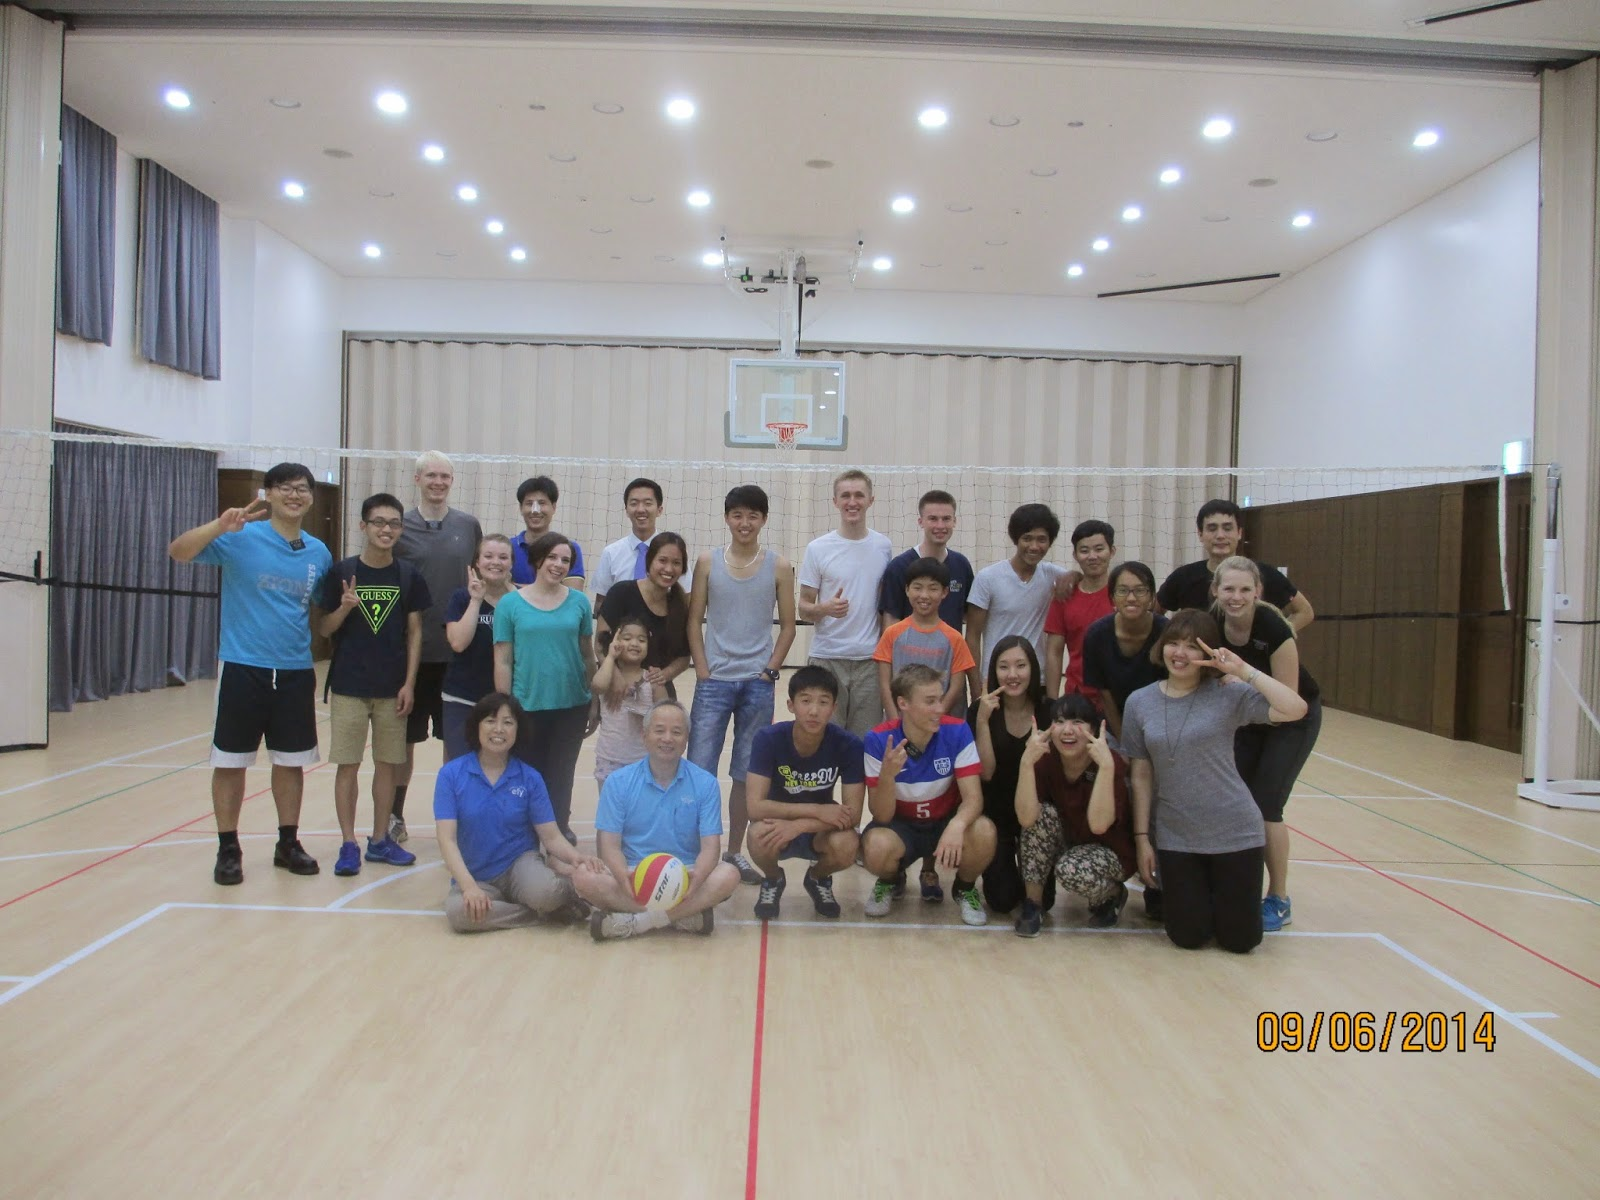 we had a sports night and quite a few people came!